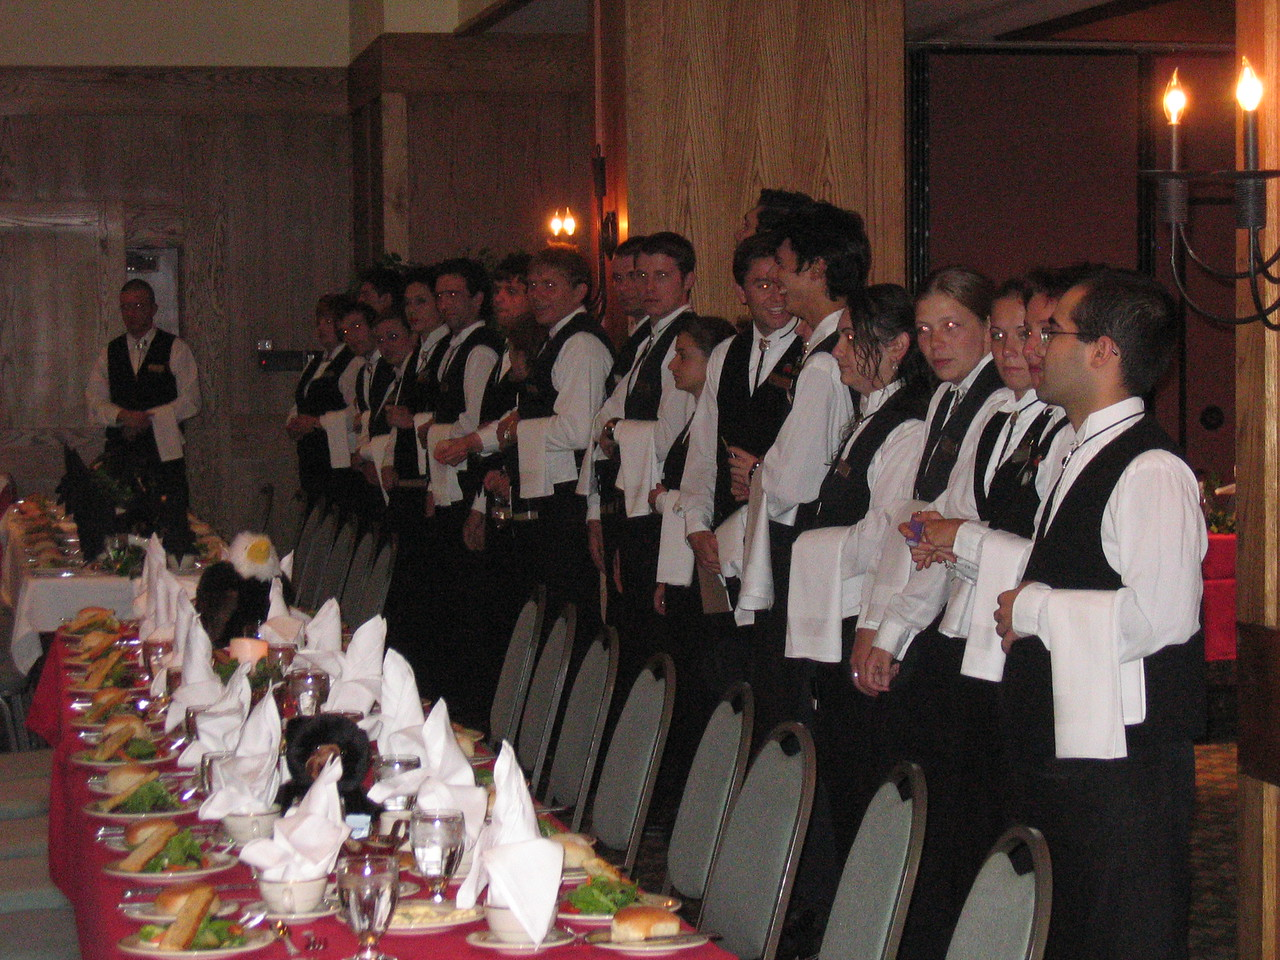 The banquet was very formal . . .